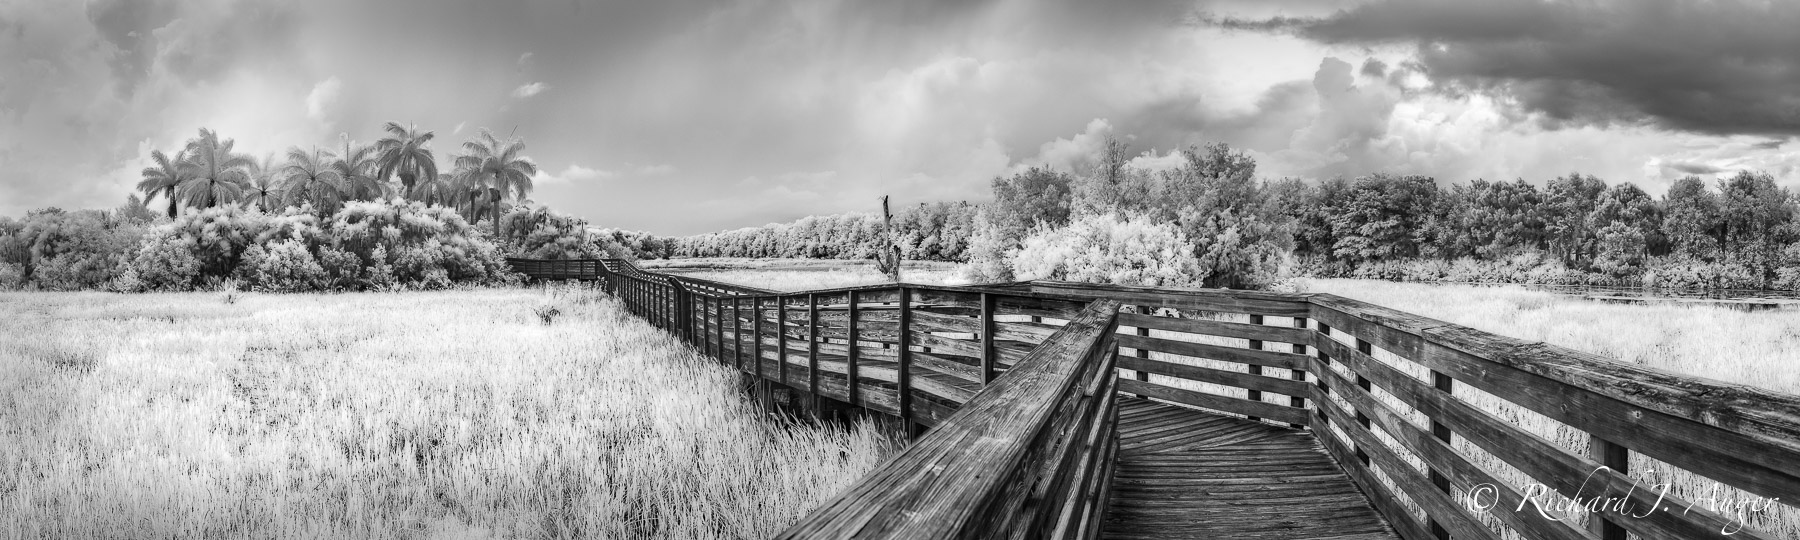 green cay wetlands, Palm beach County, Florida, boardwalk, swamp, black and white